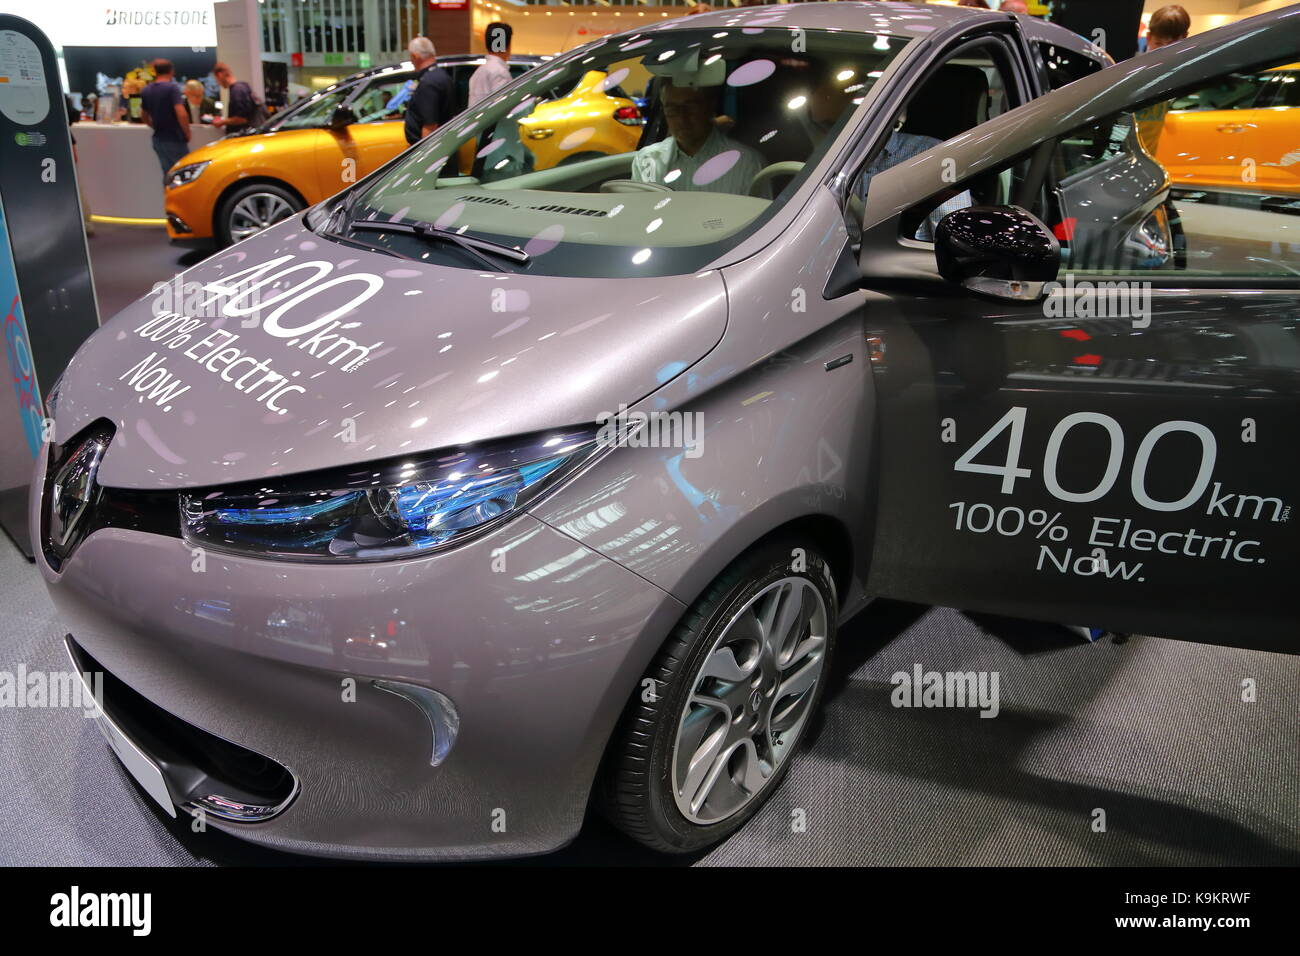 Renault displayed its range and innovations at the 2017 Frankfurt Motor Show in Germany - Stock Image